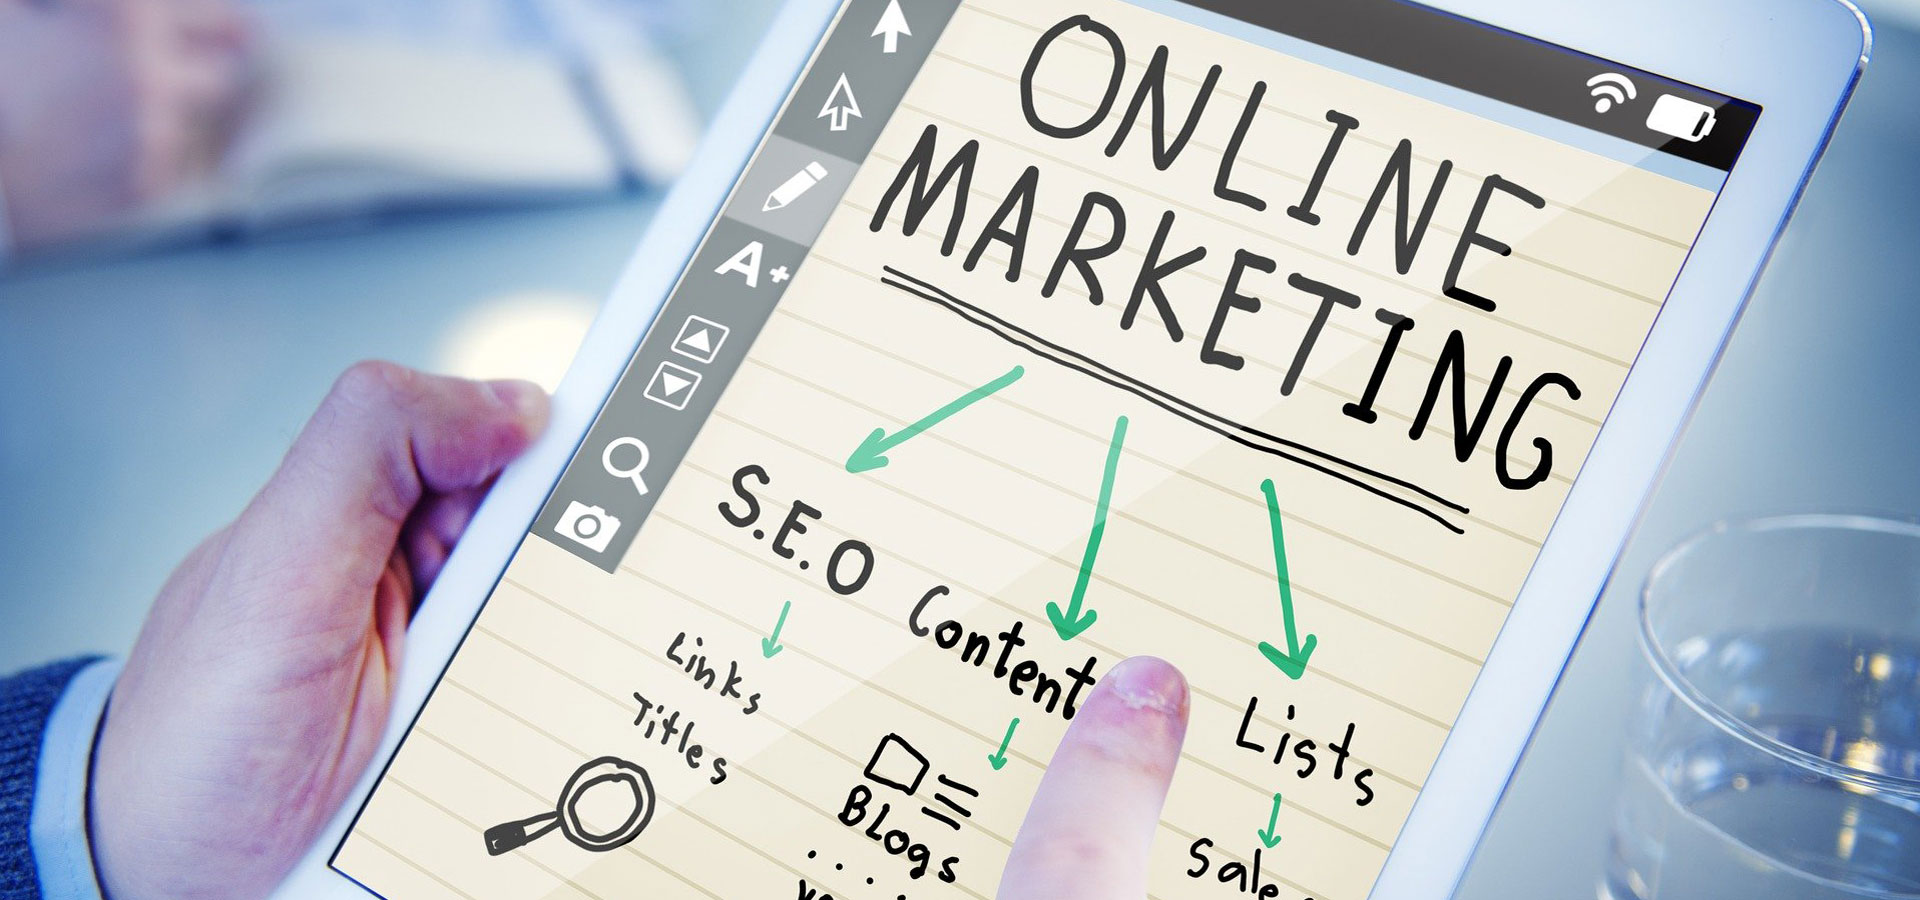 AIMD Group Online Marketing Solution Services